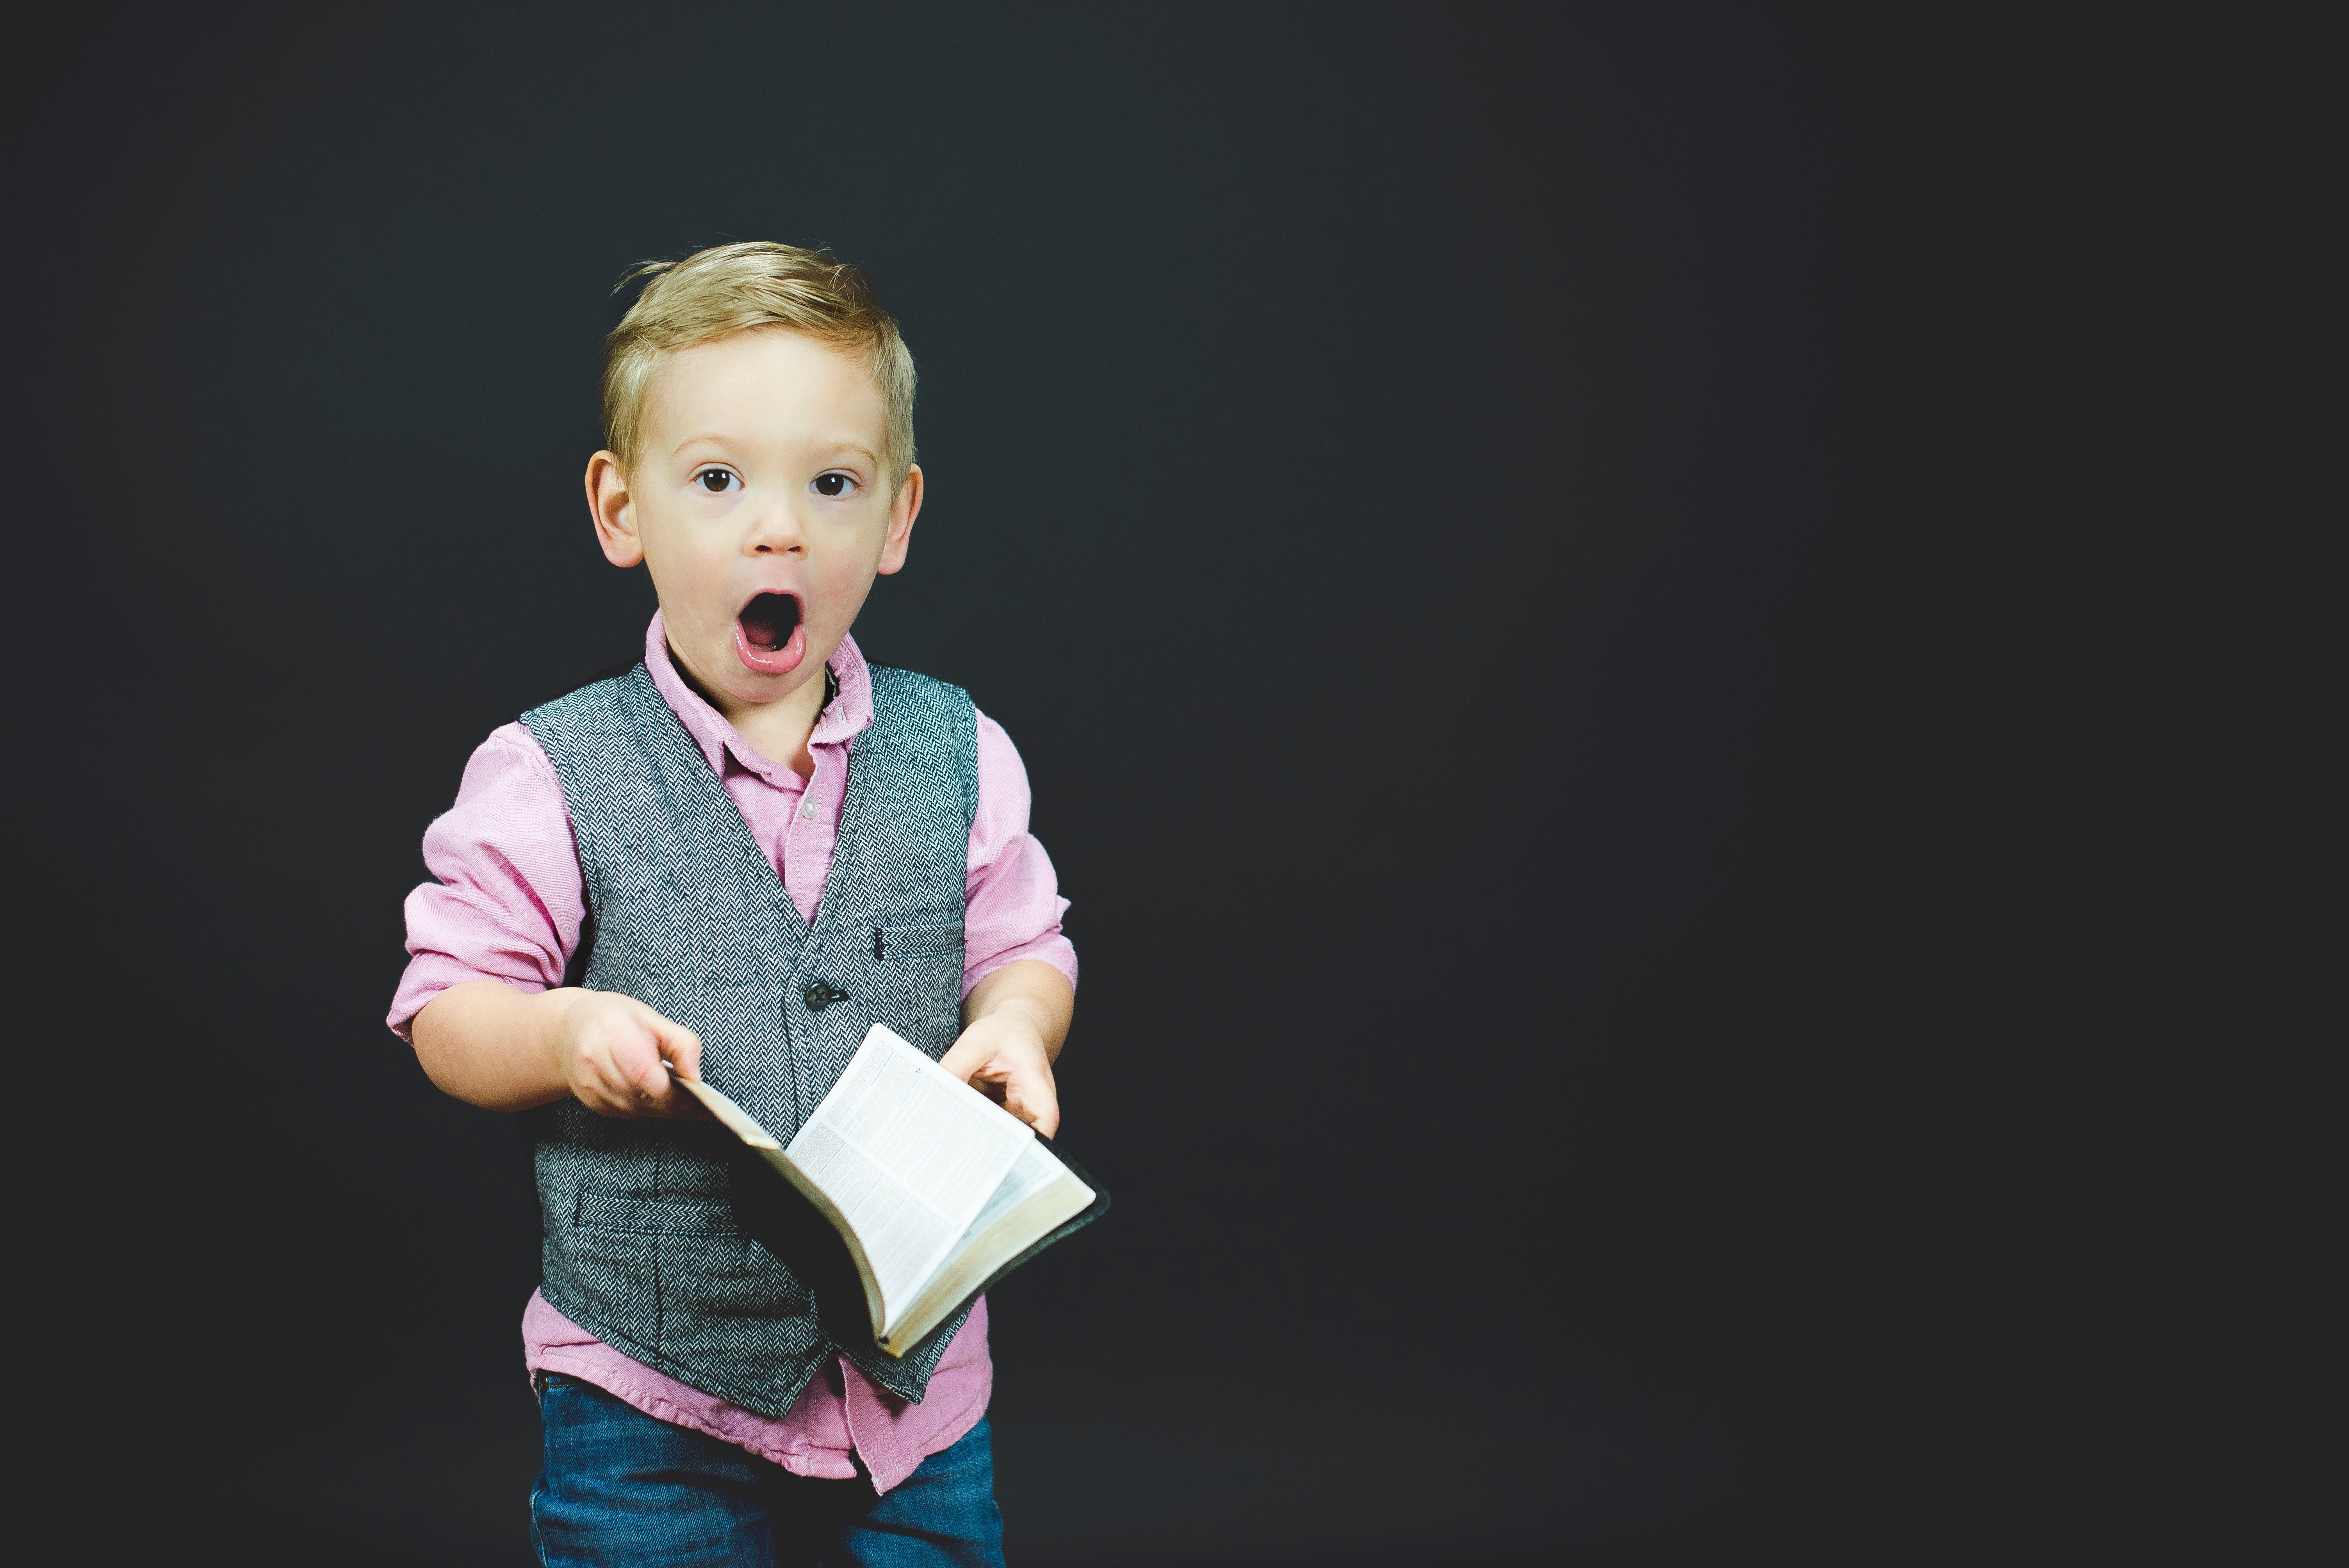 A little boy against a black background holding a book